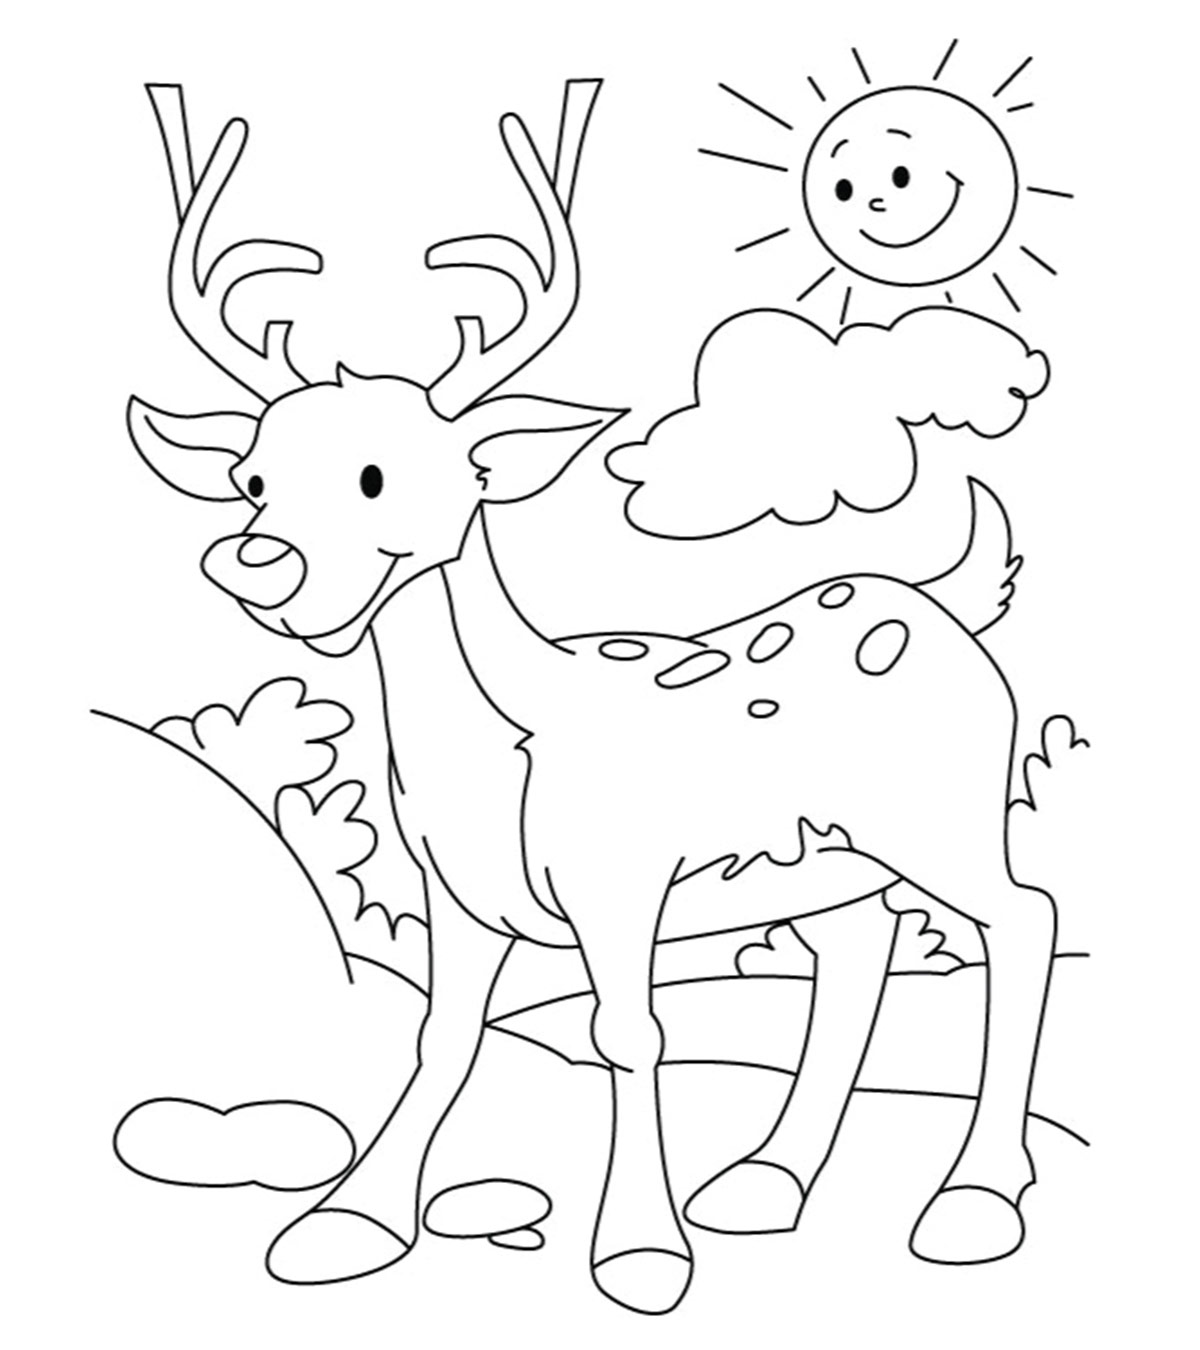 Dear Coloring Pages Coloring Home